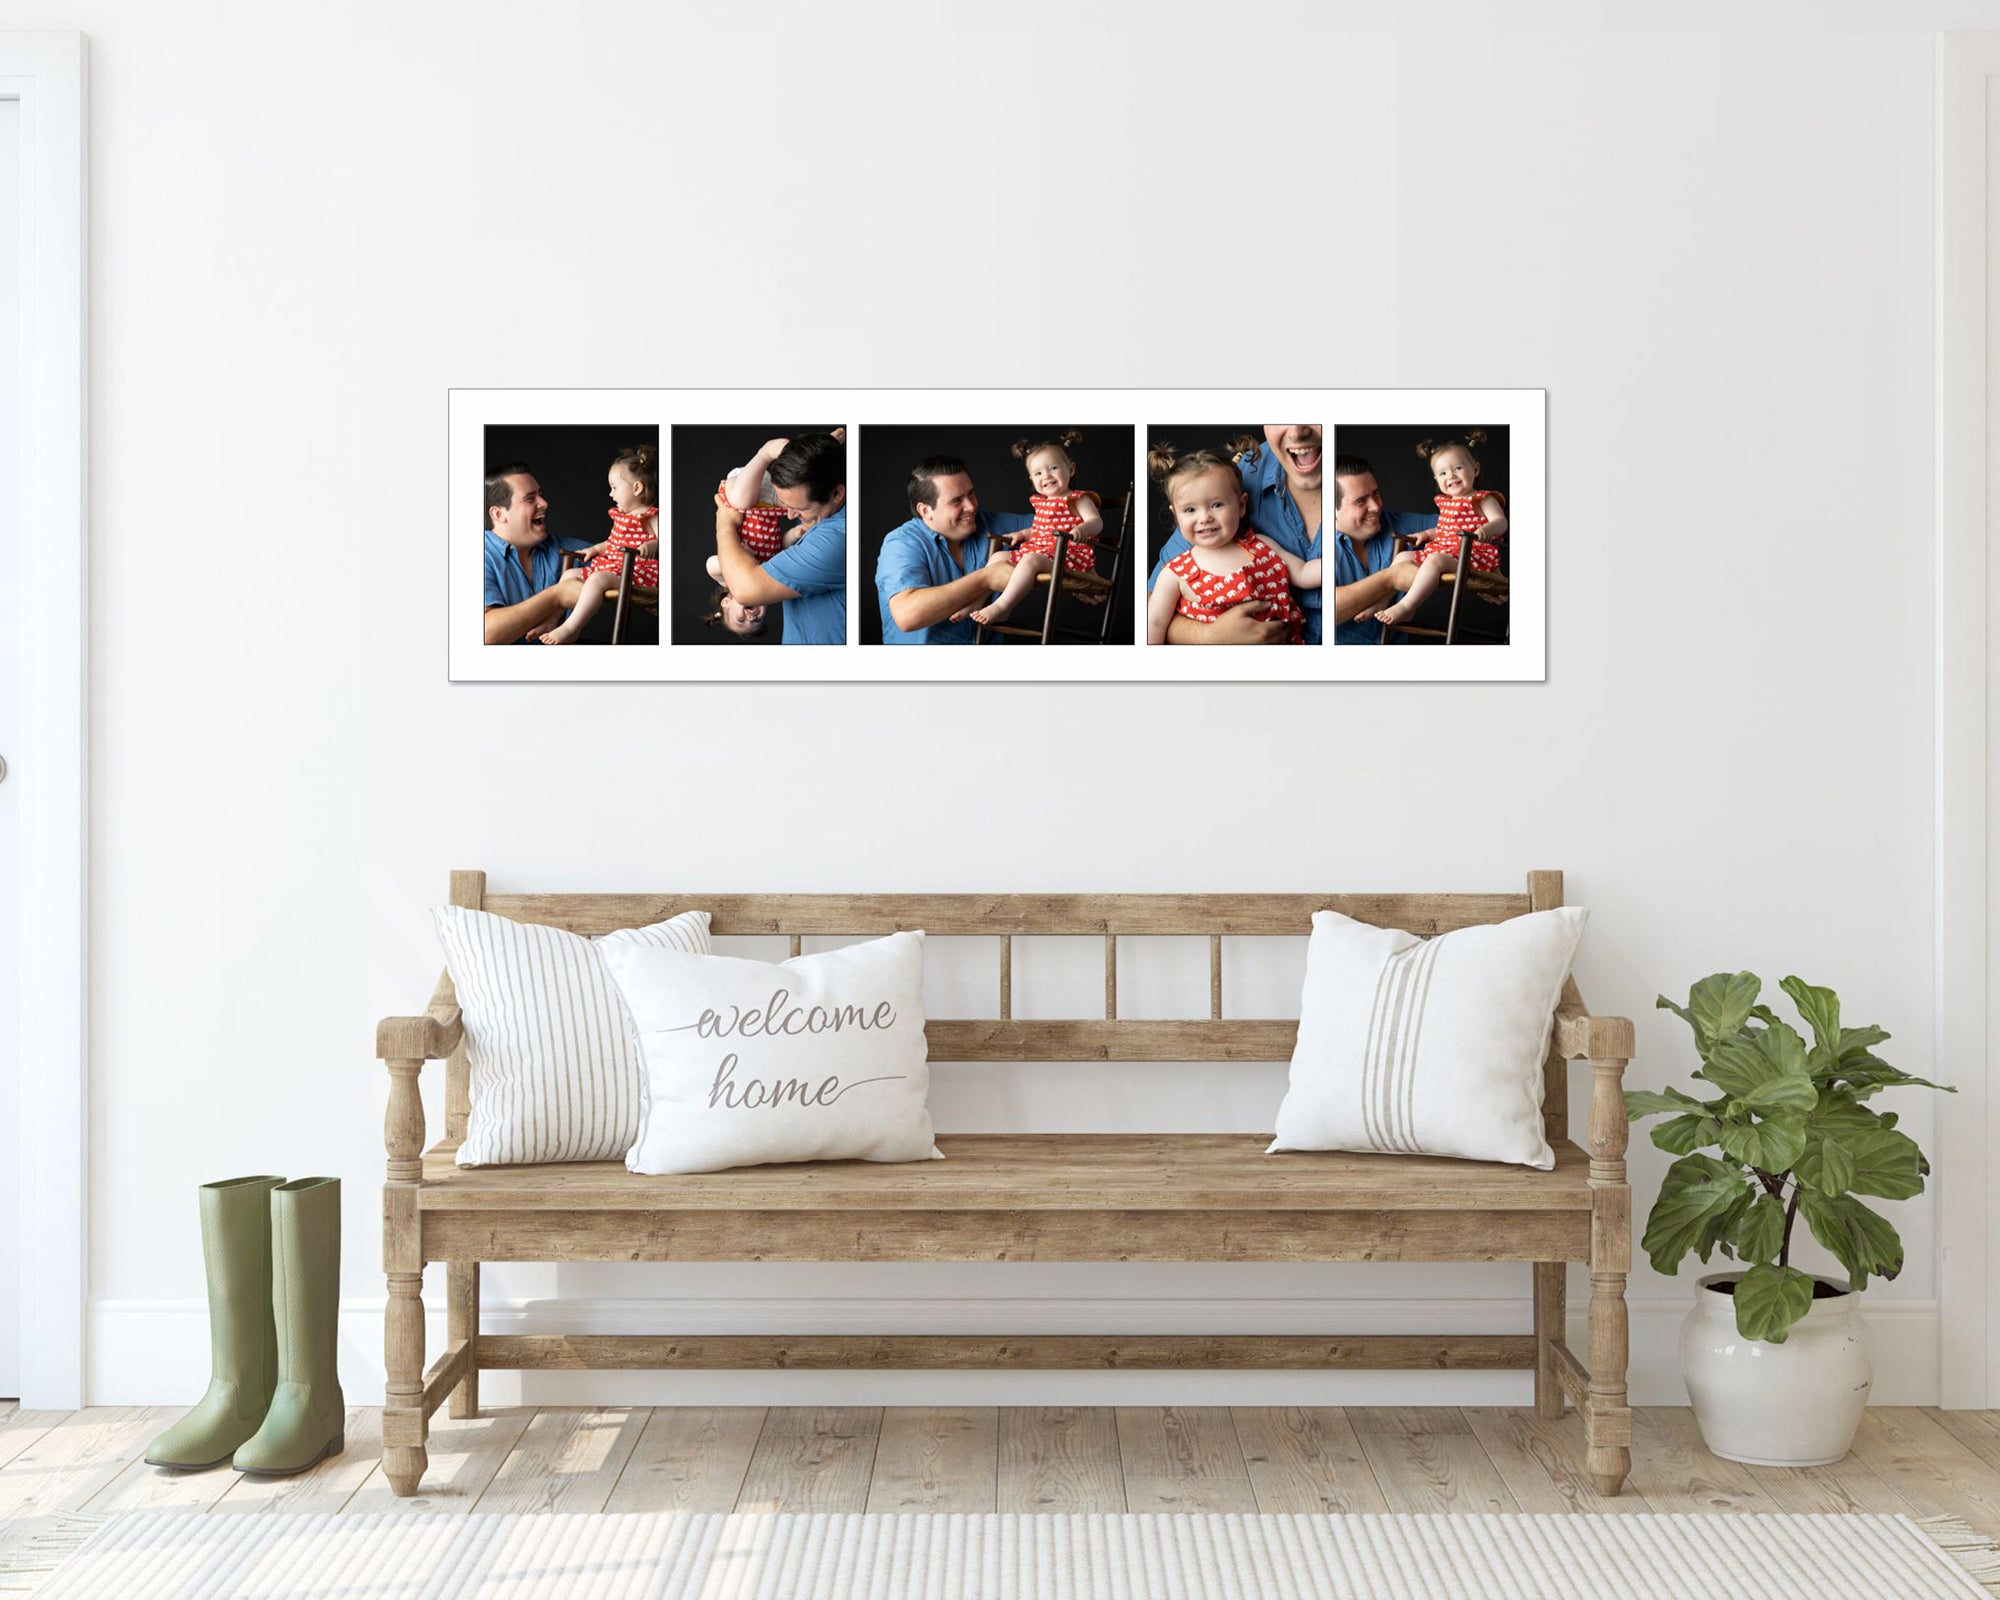 horizontal_collection_of_portraits_of_pretty_girl_in_red_dress_above_a_bench.jpg